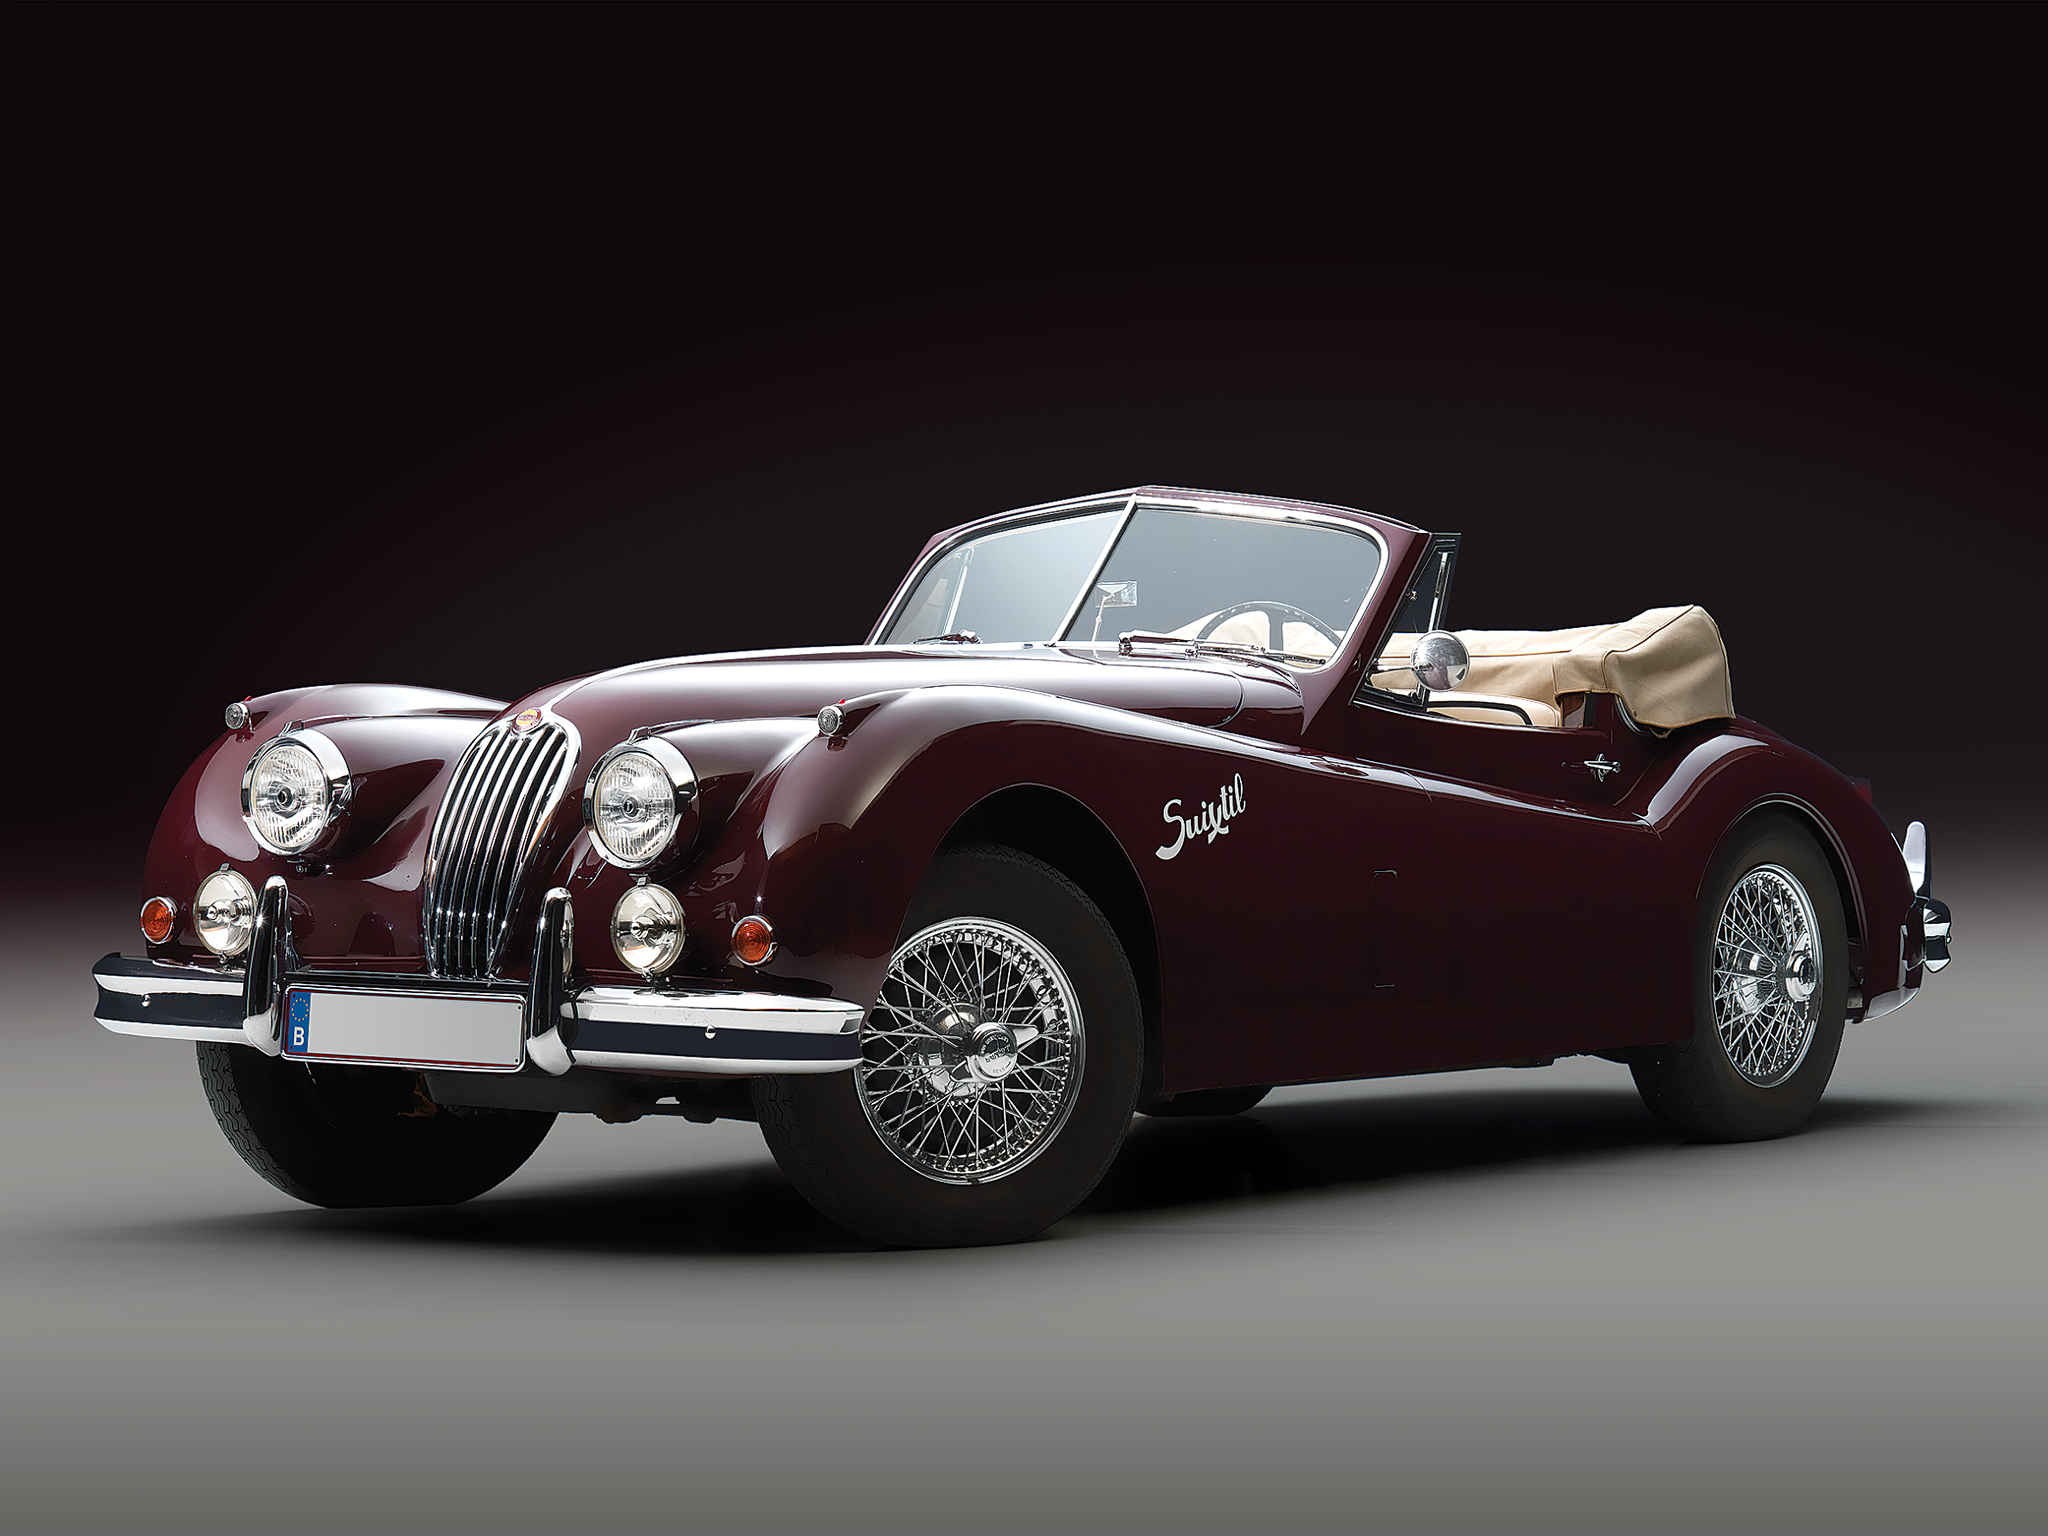 Jaguar Car Wallpapers Hd Free Download 1954 Jaguar Xk140 Drophead Coupe Retro T Wallpaper